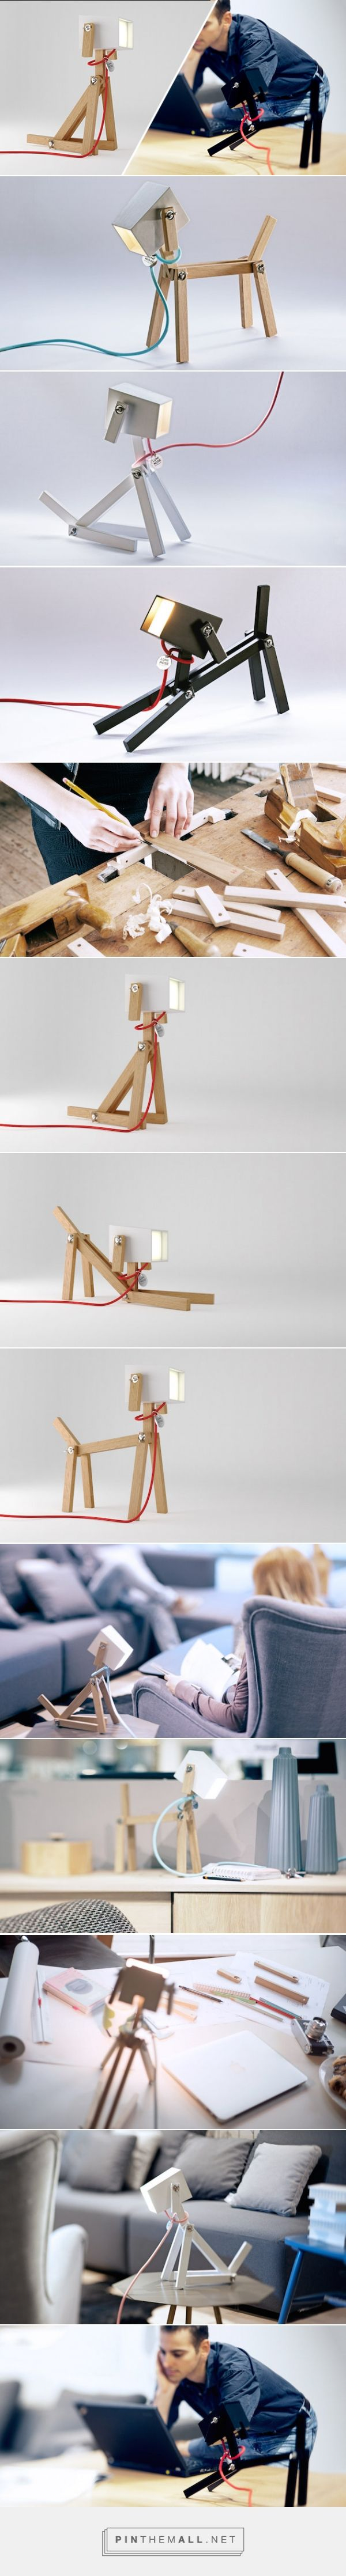 Luminose Lamp | Zimmerer and Lente | Feel Desain - created via http://pinthemall.net